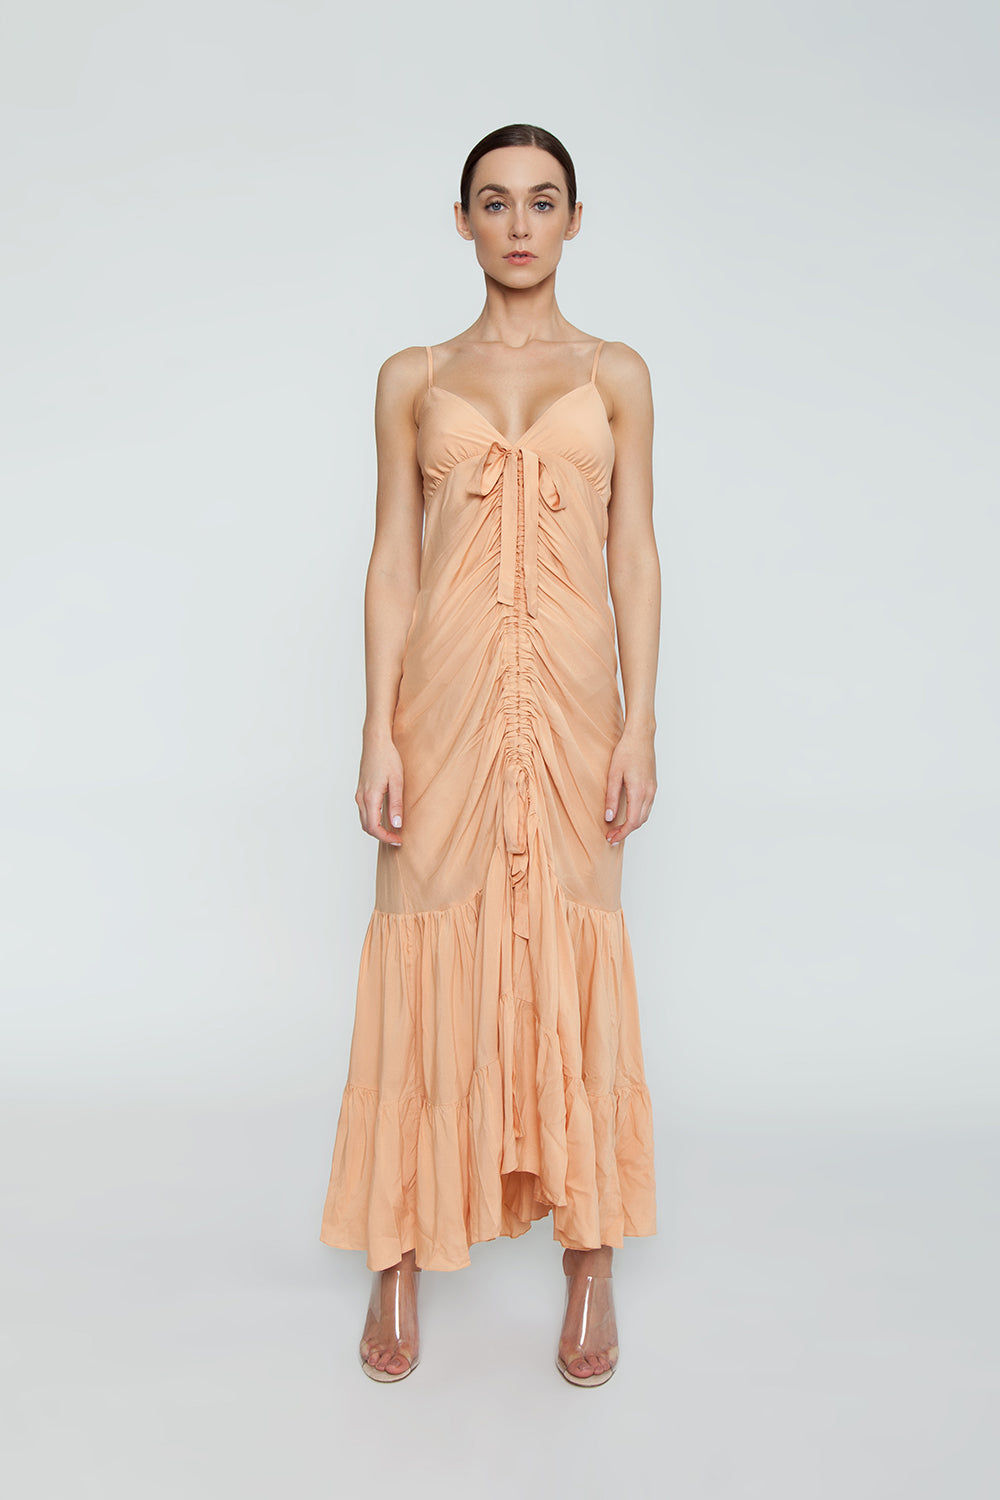 CLUBE BOSSA De Niro Drawstring Long Dress - Peach Dress | Peach| Clube Bossa De Niro Drawstring Long Dress - Peach Features:  V neckline  Thin shoulder straps  Drawstring front scrunch tie closure  Ruffle tier detail  Front View